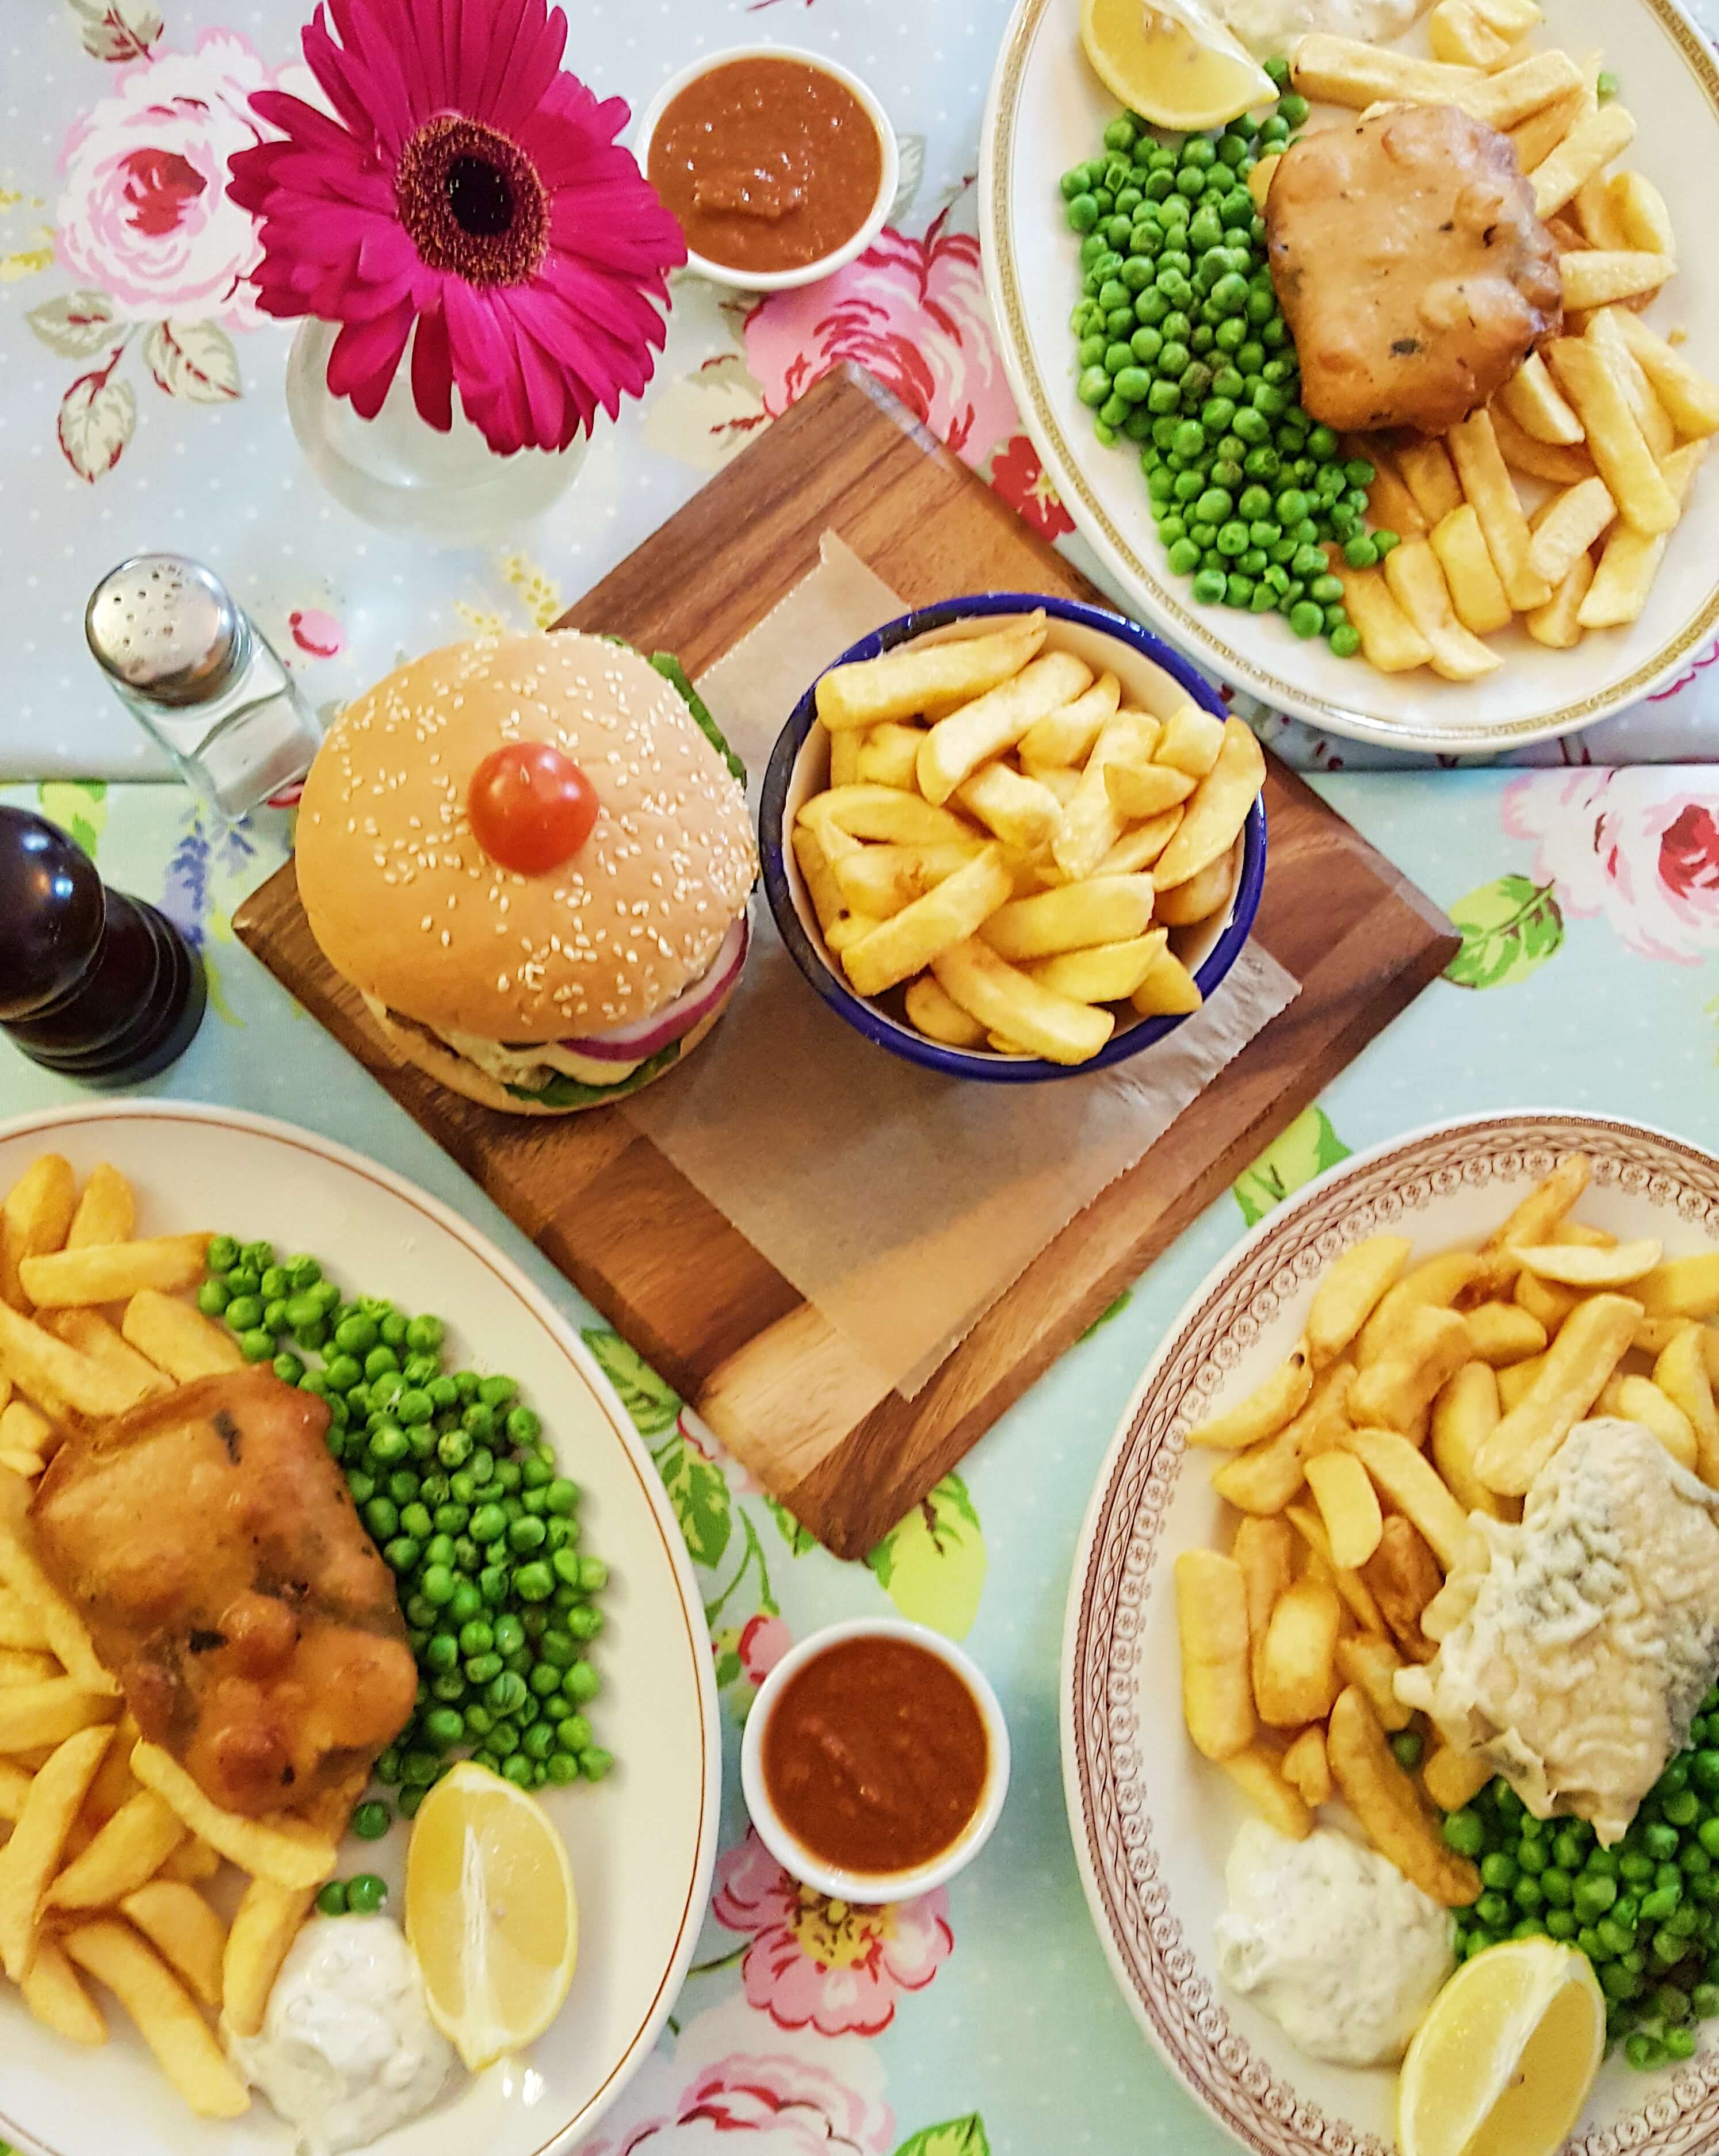 Vegan Fish and Chips in London